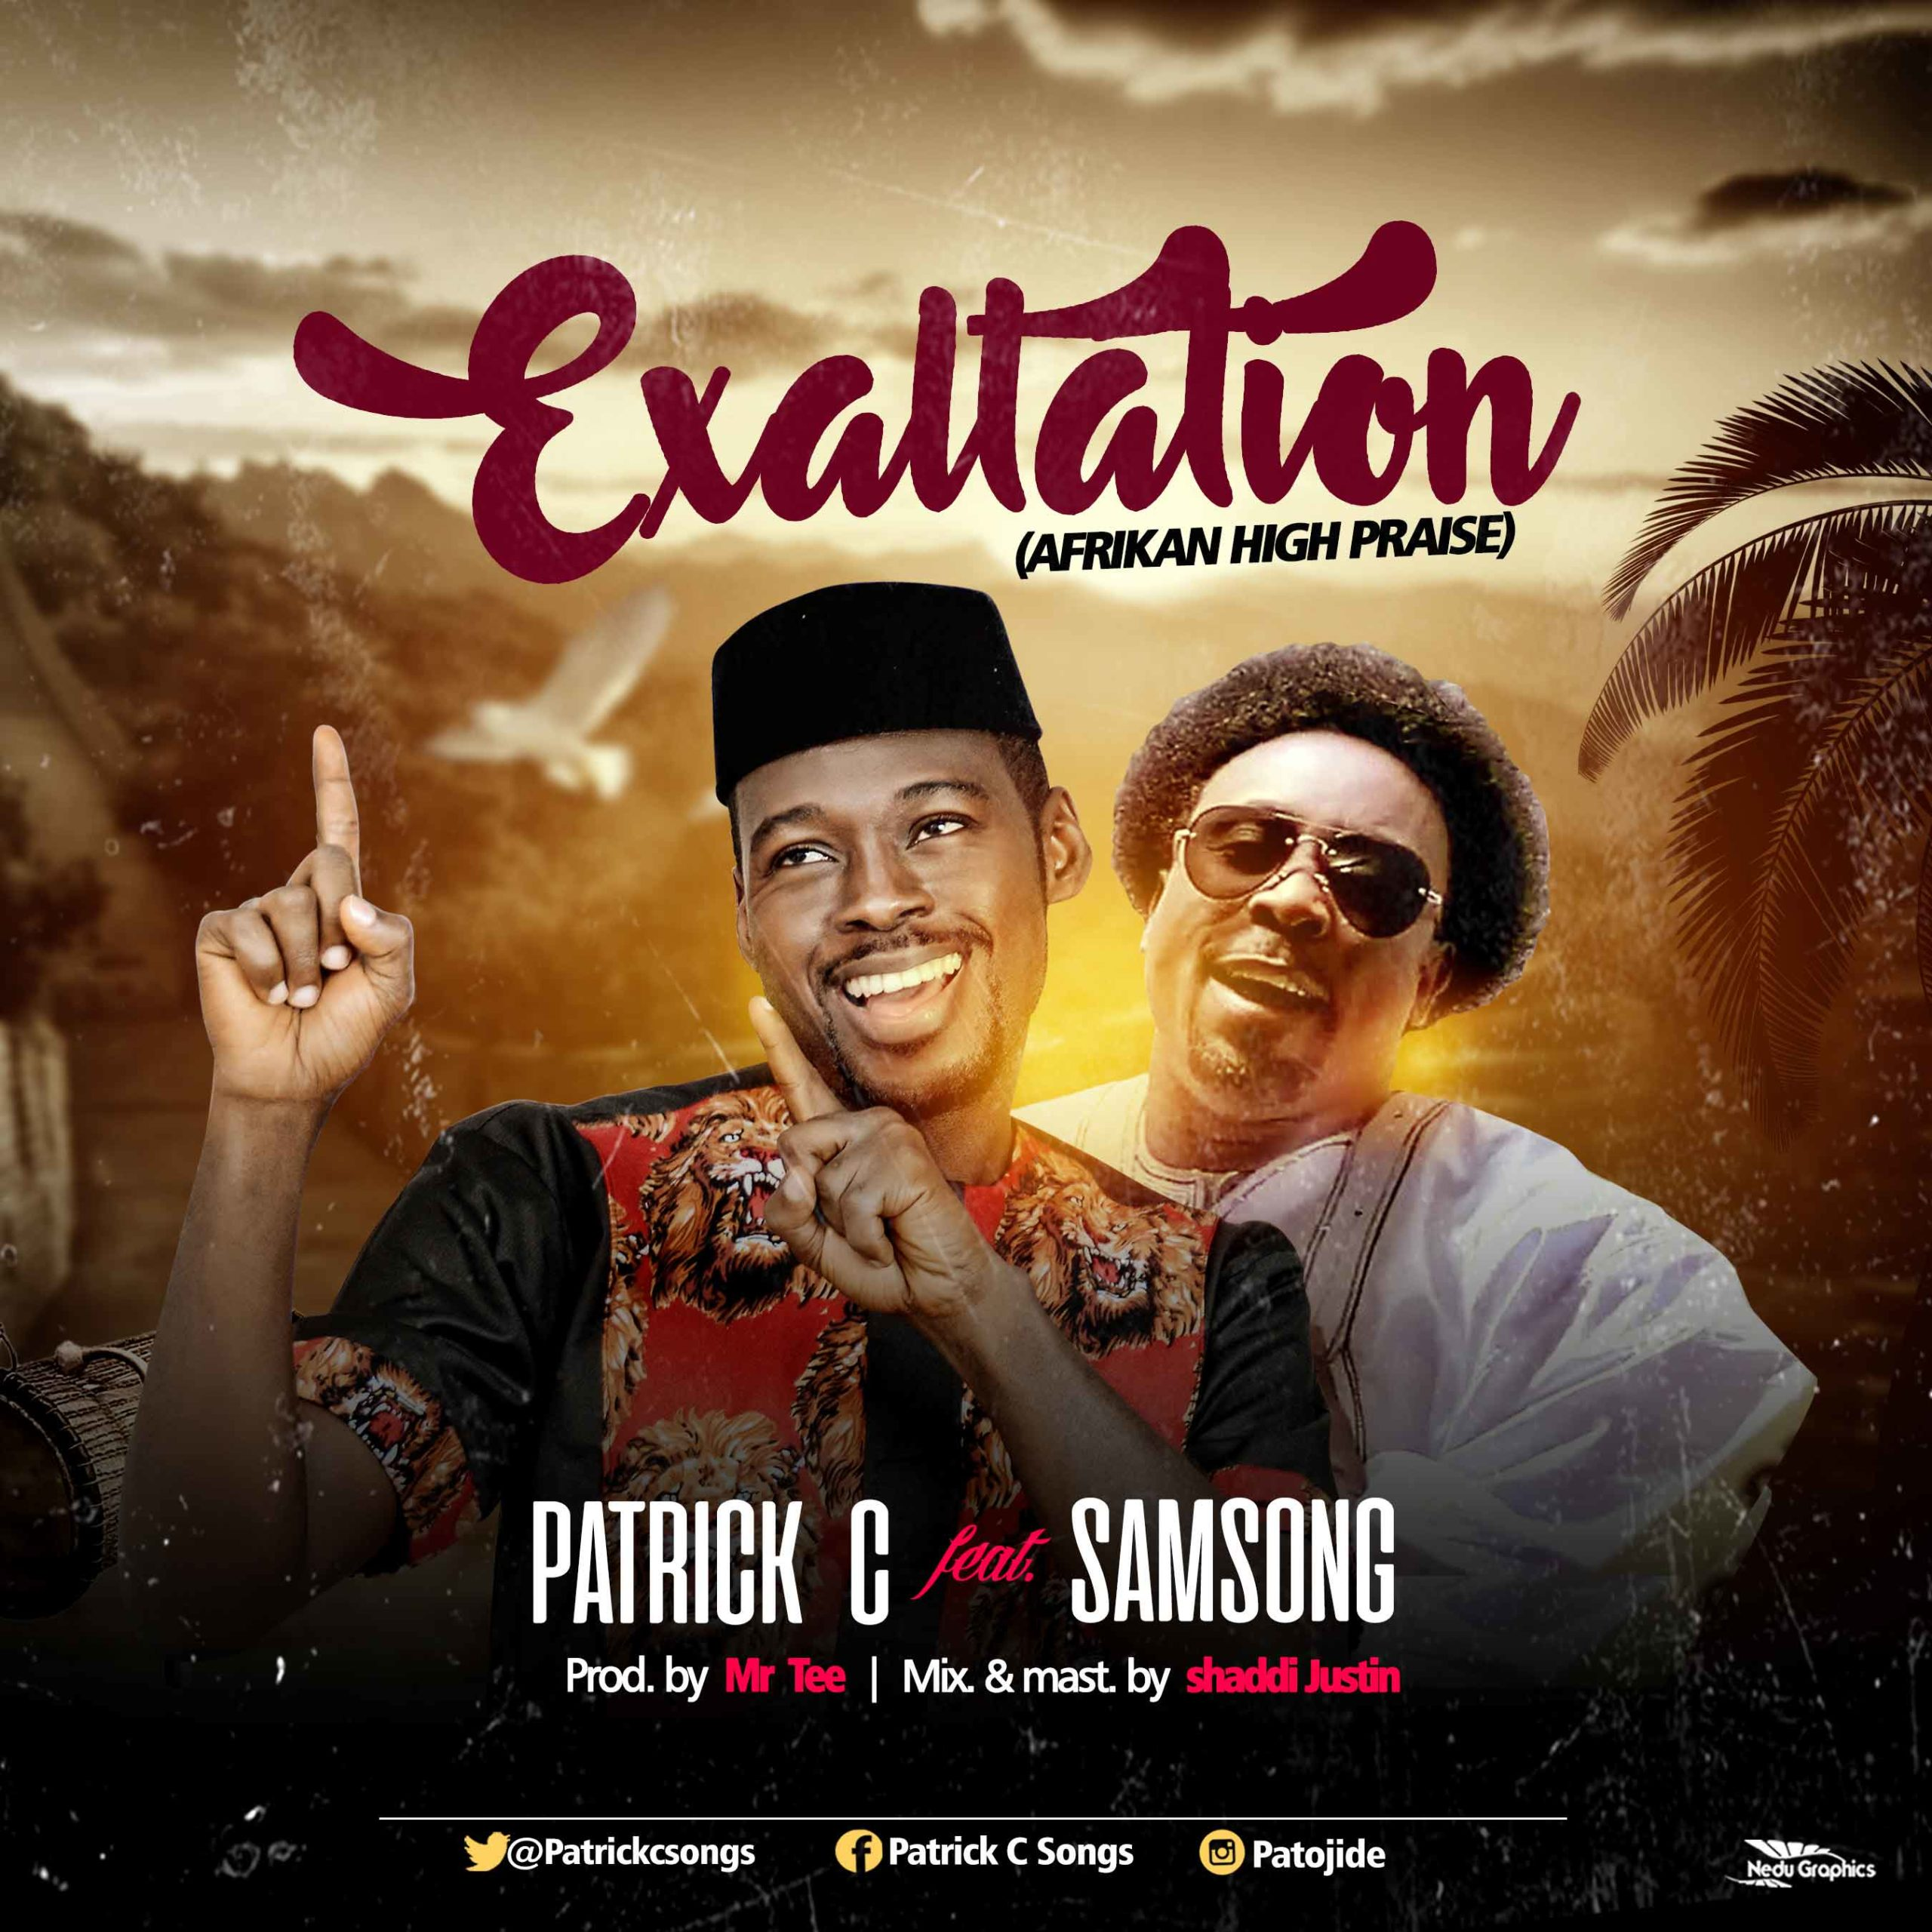 Patrick-C-Exalted-Featuring-Sam-Song-Cover-Design